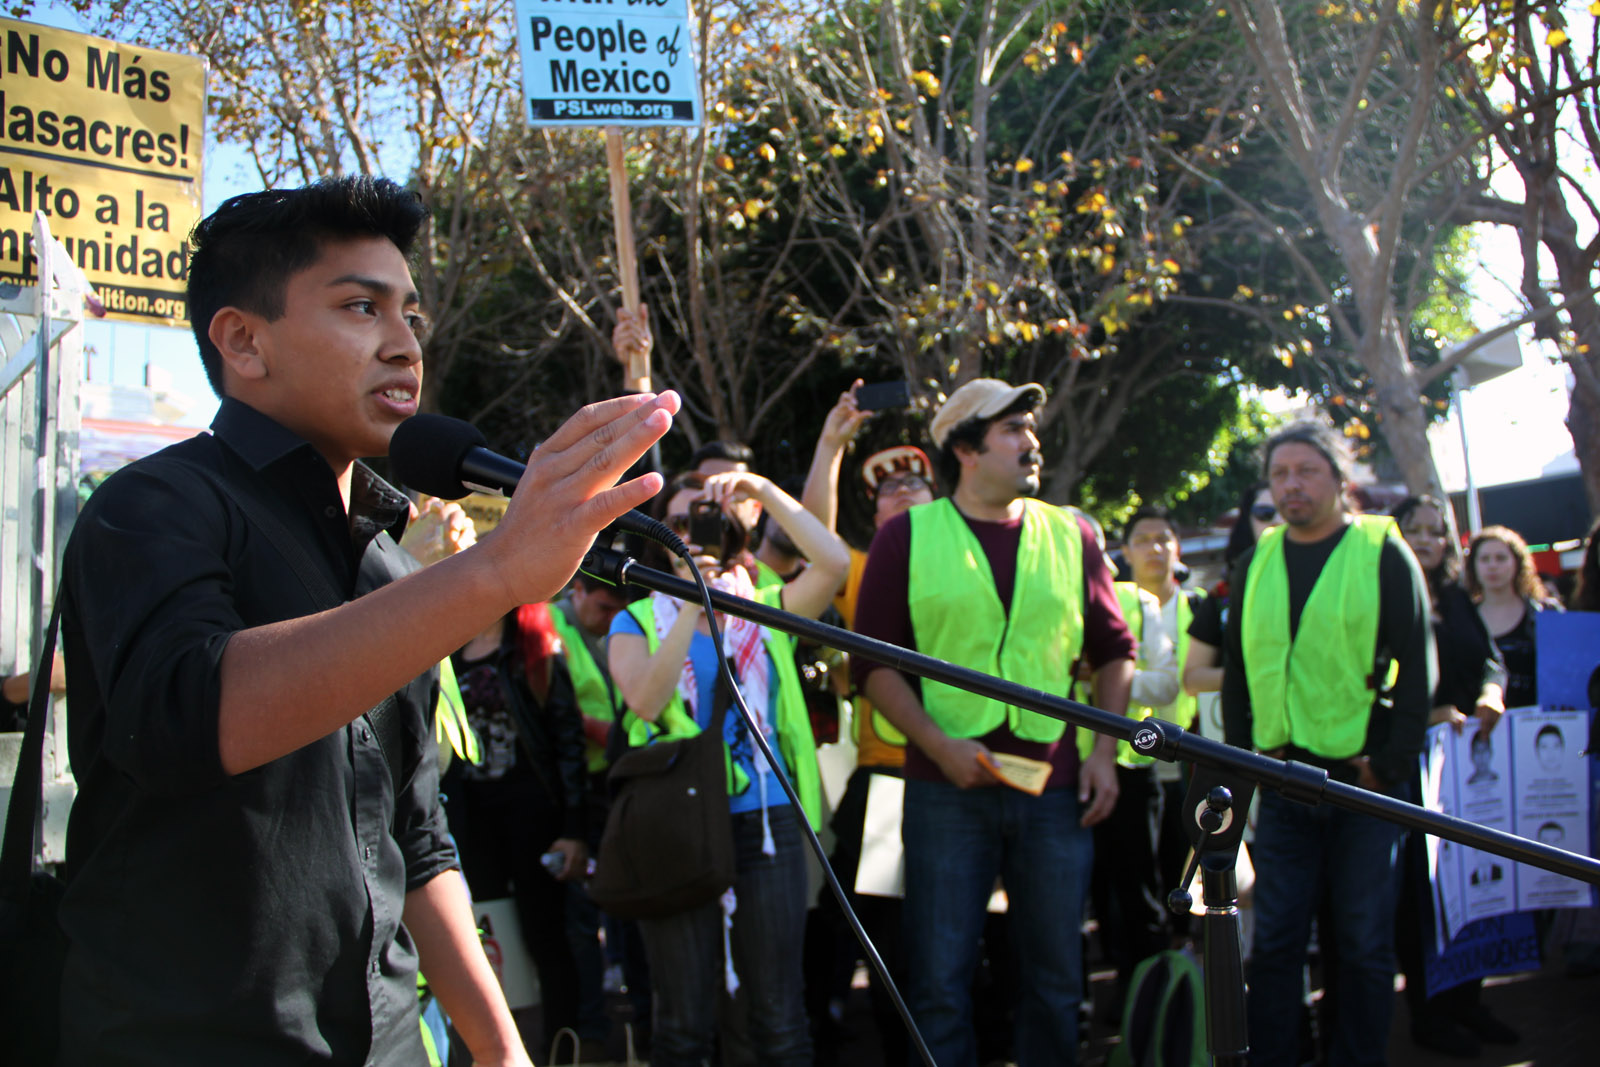 Students protested at a 2014 UC Berkeley rally on behalf of undocumented immigrants. Photo by Mission Local.